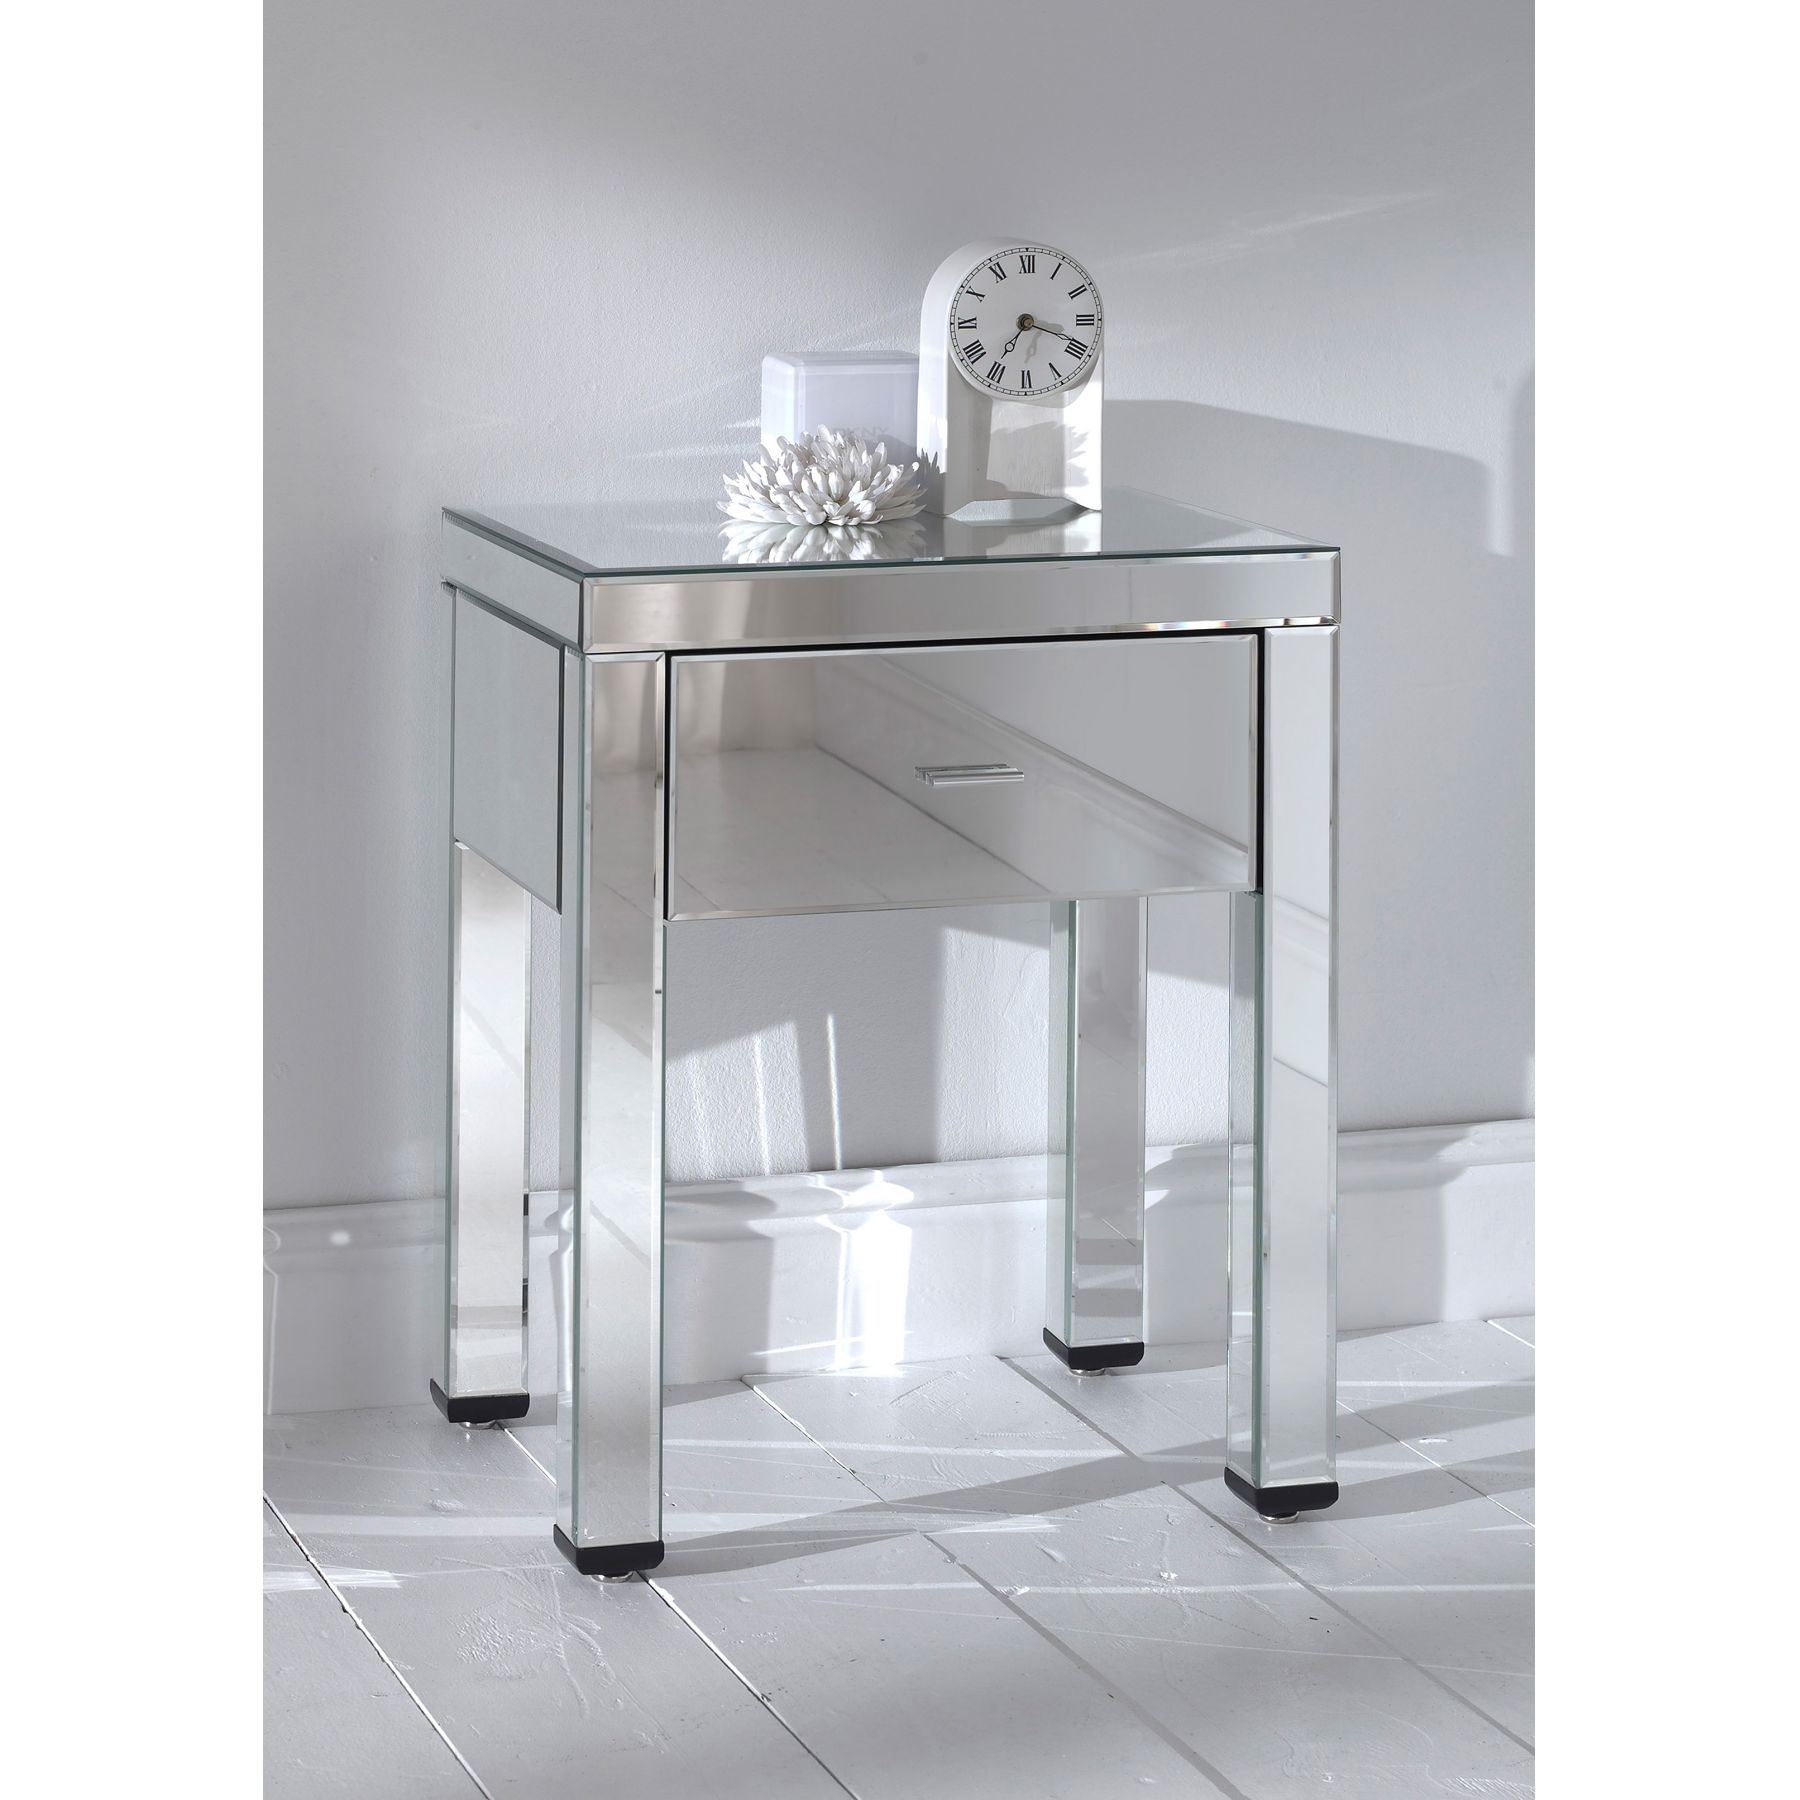 furniture elegant mirrored accent table for home ideas with single drawer plus tile floor and white wall decoration espresso bedroom antique brass coffee mosaic base target marble